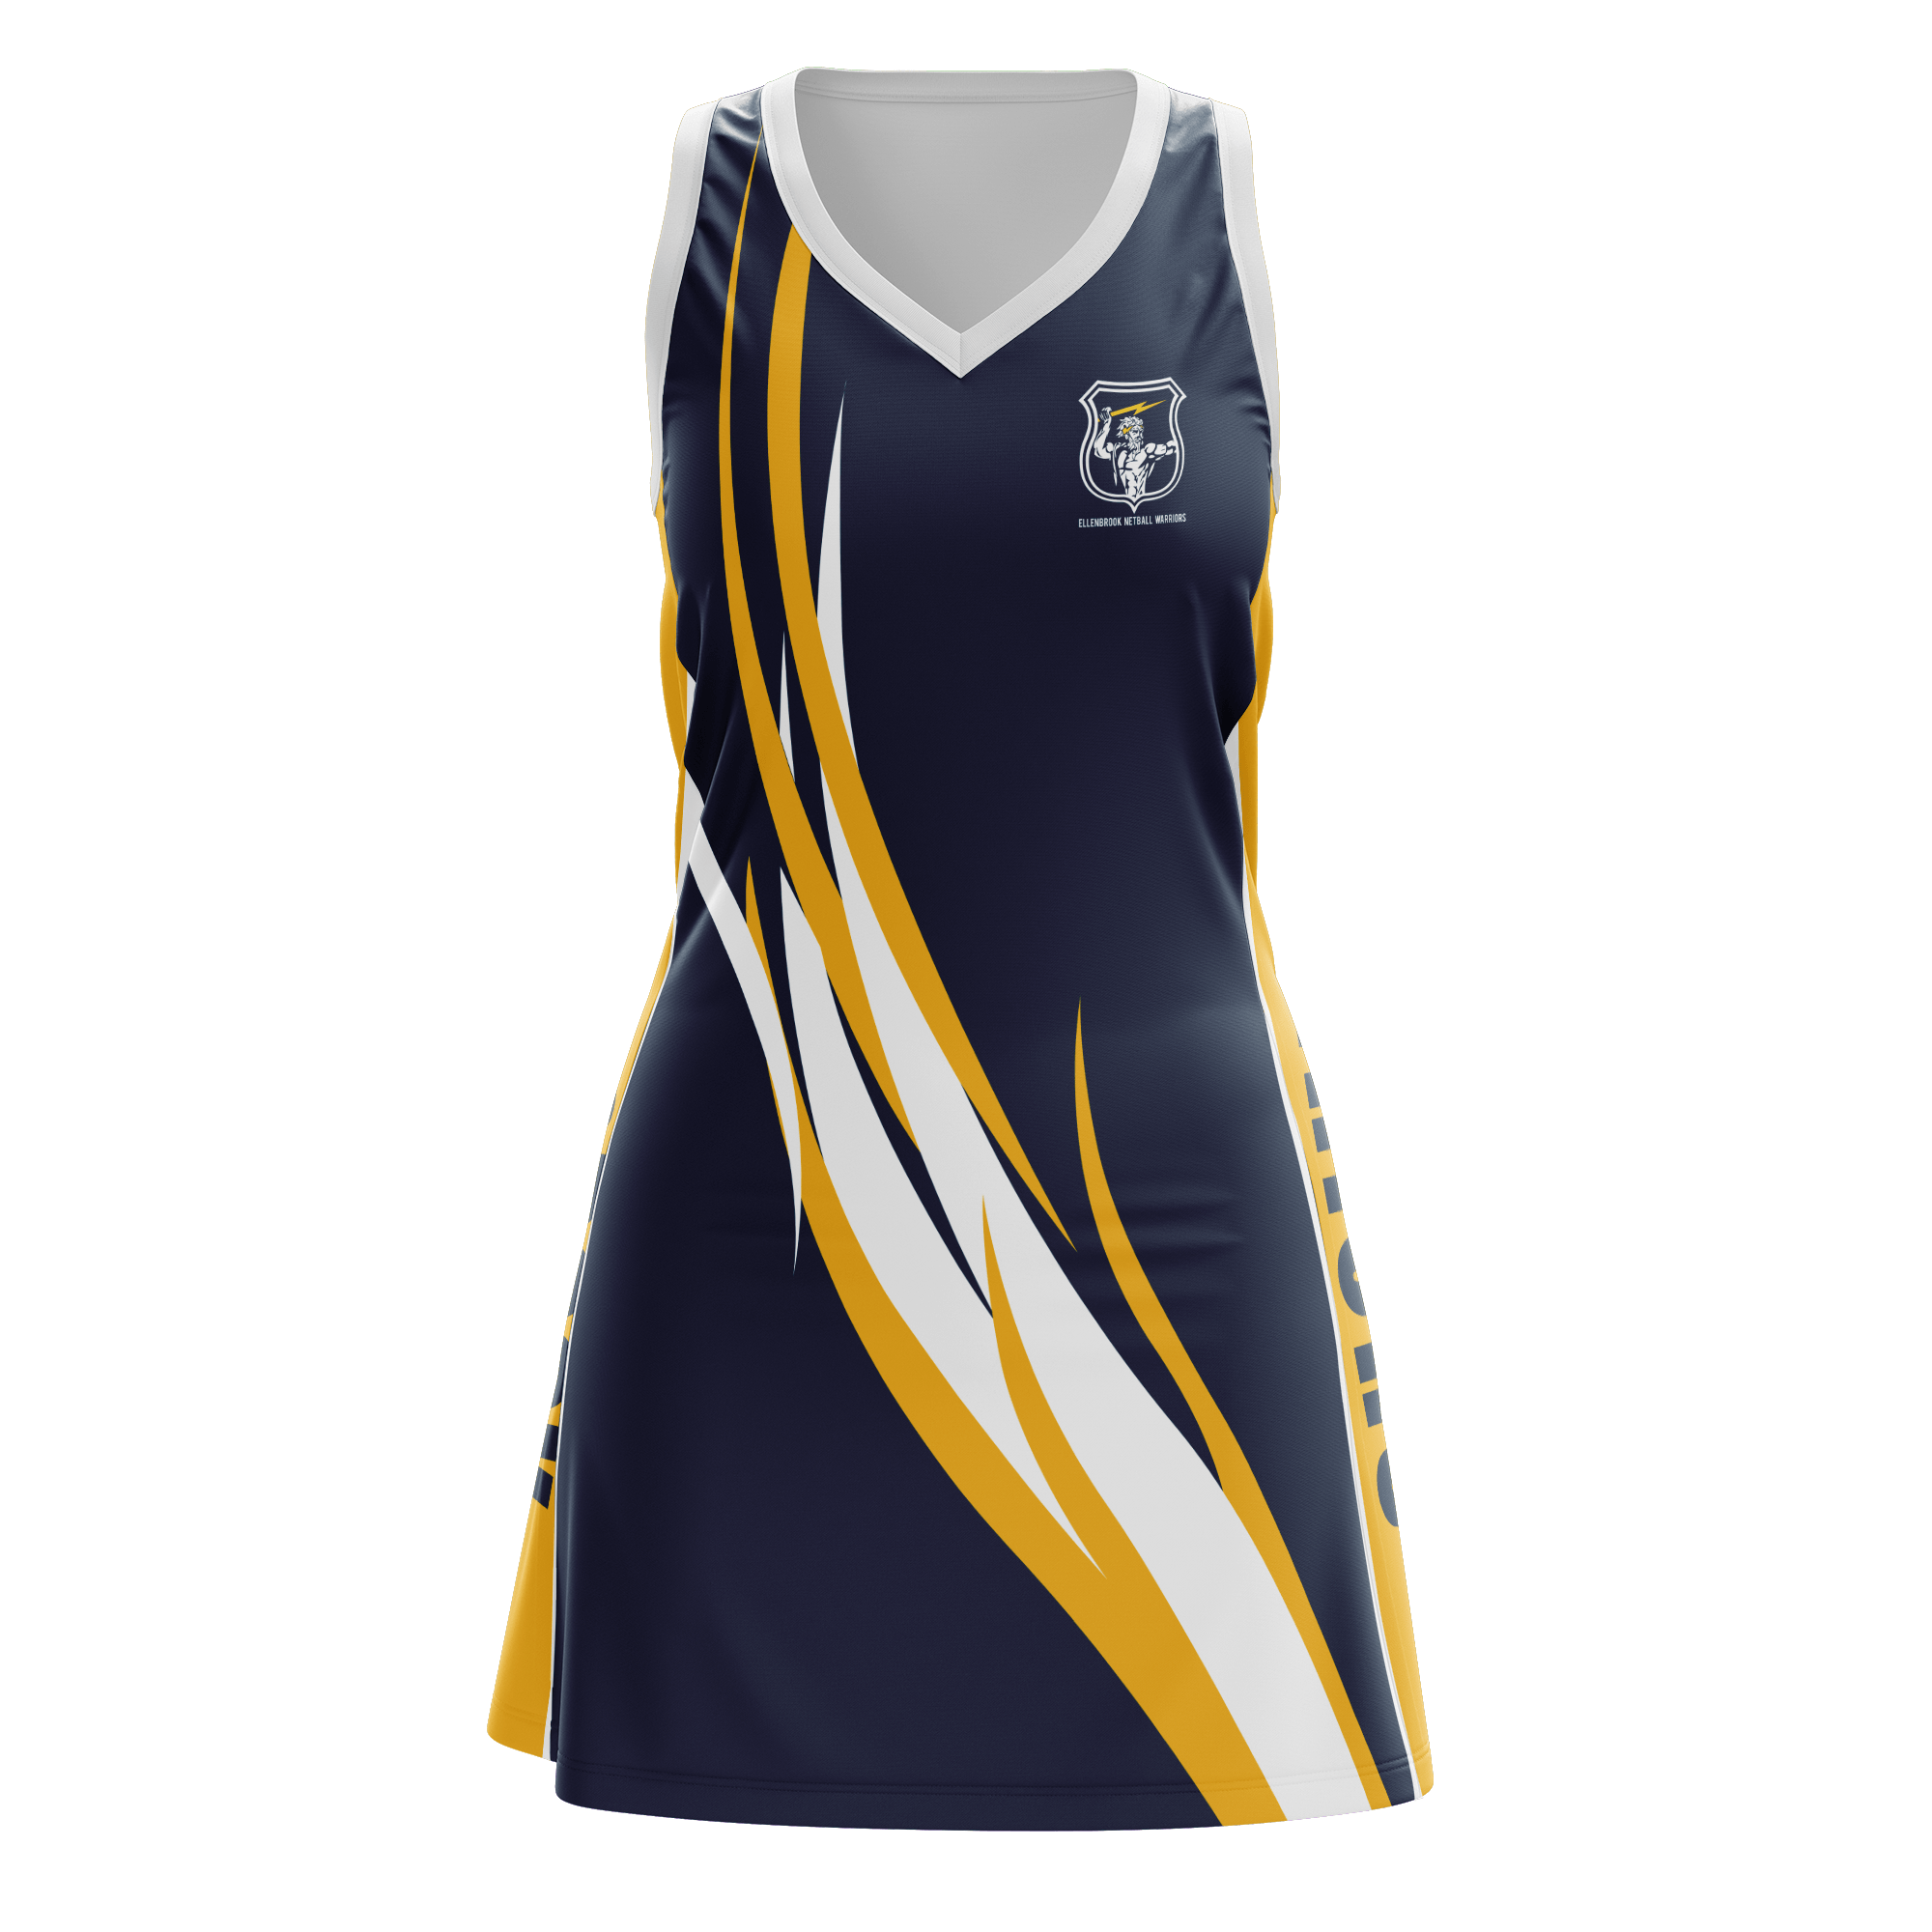 ee86a80ce For custom made netball uniforms that will last season to season trust us